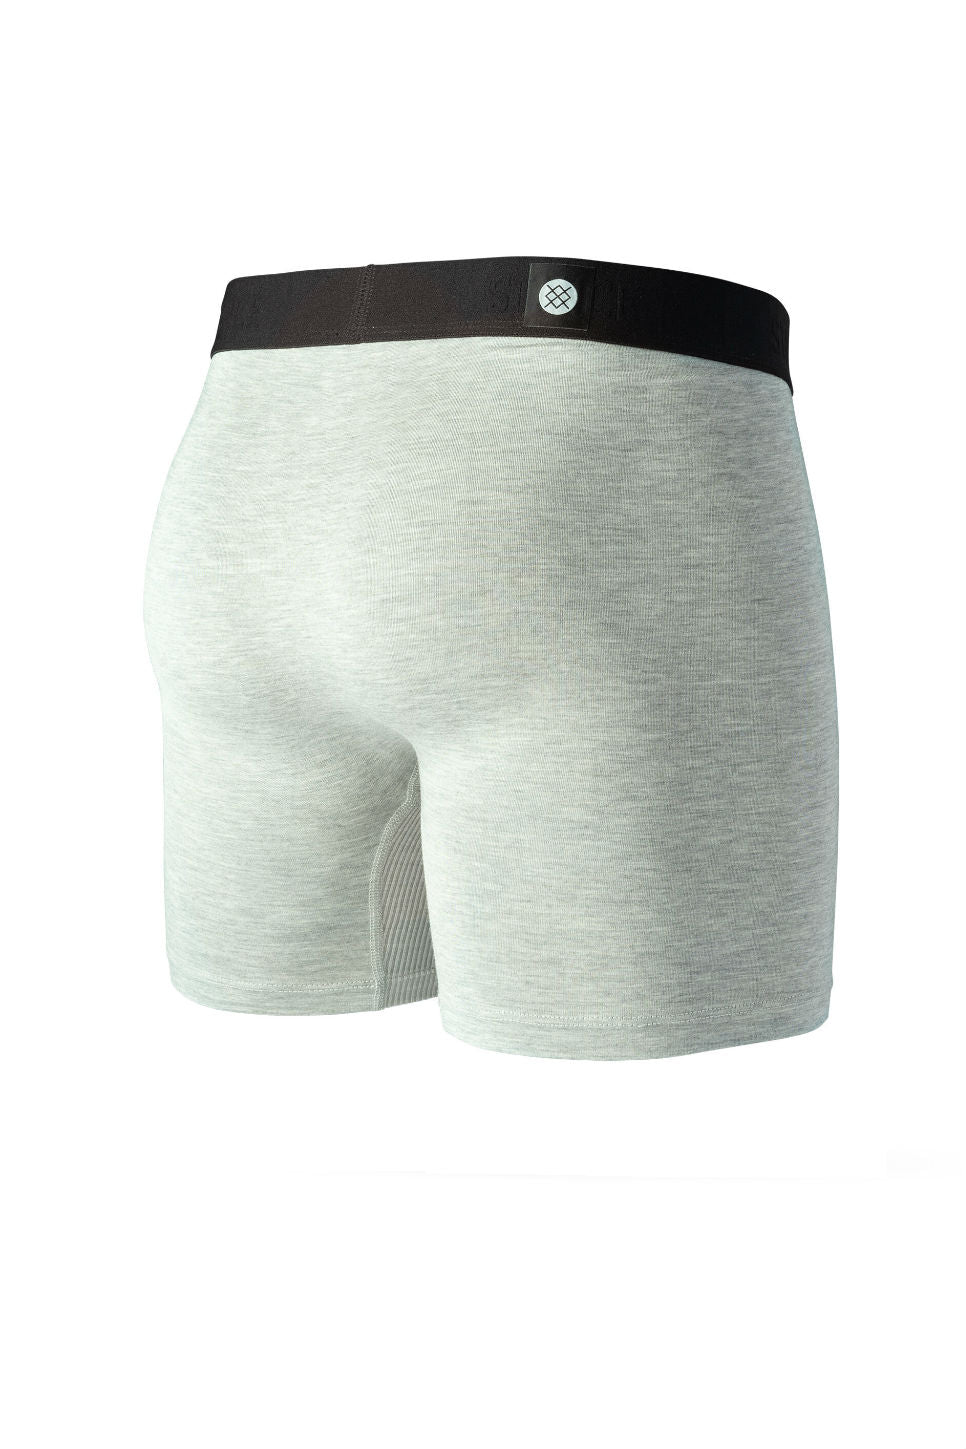 REGULATION BOXER BRIEF